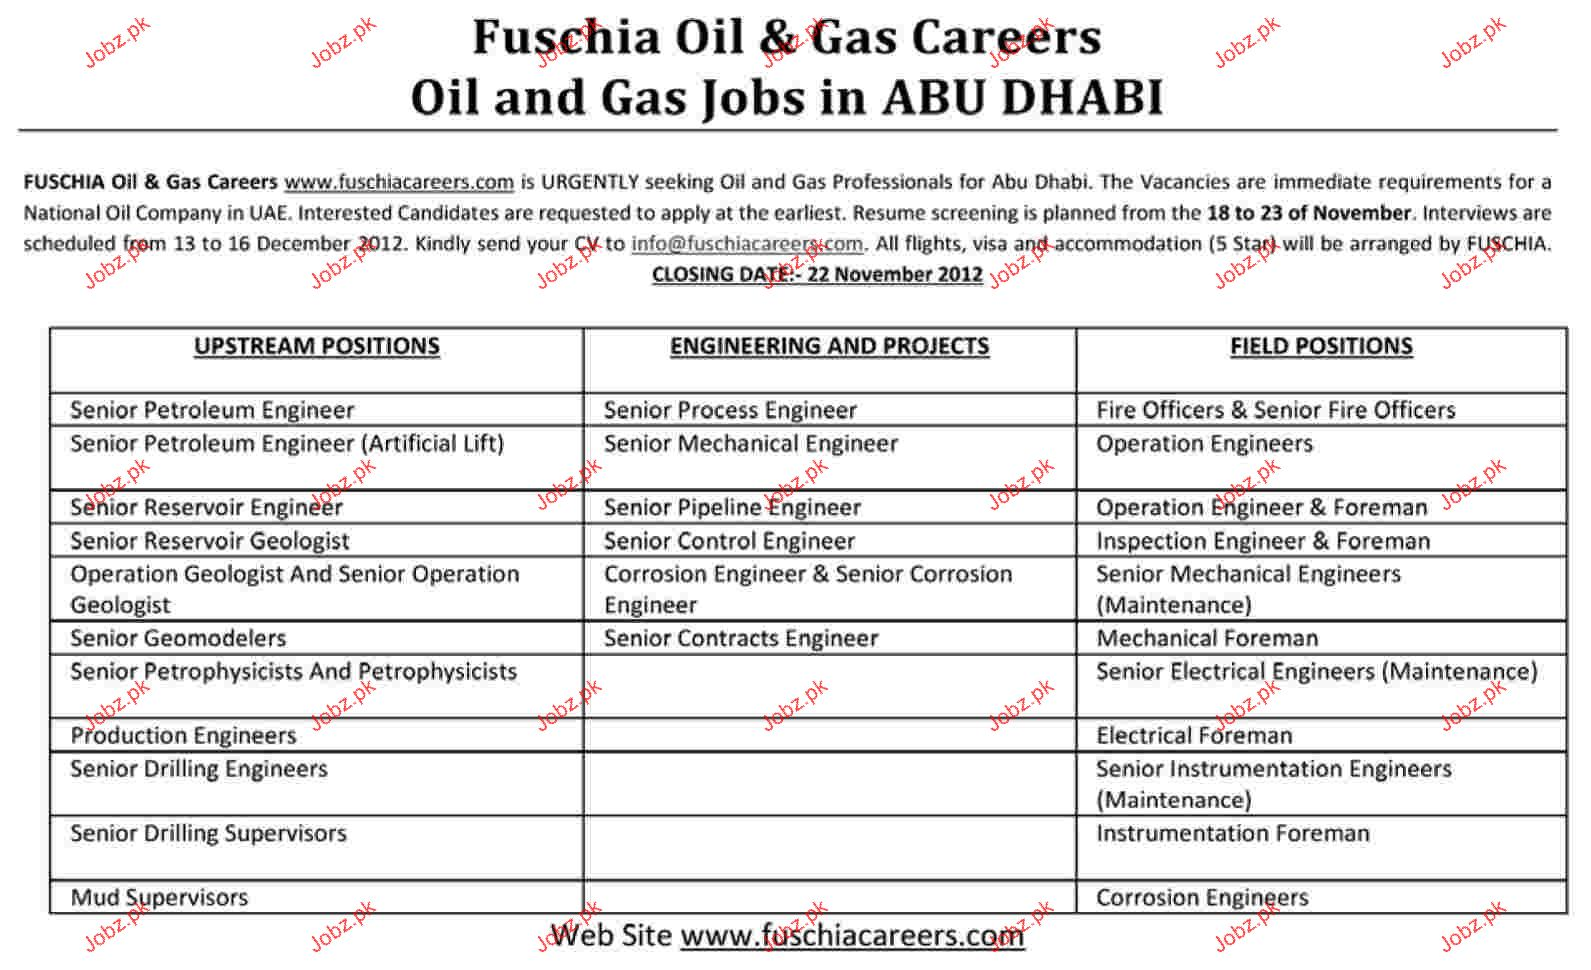 senior petroleum engineers production engineers wanted - Production Engineering Job